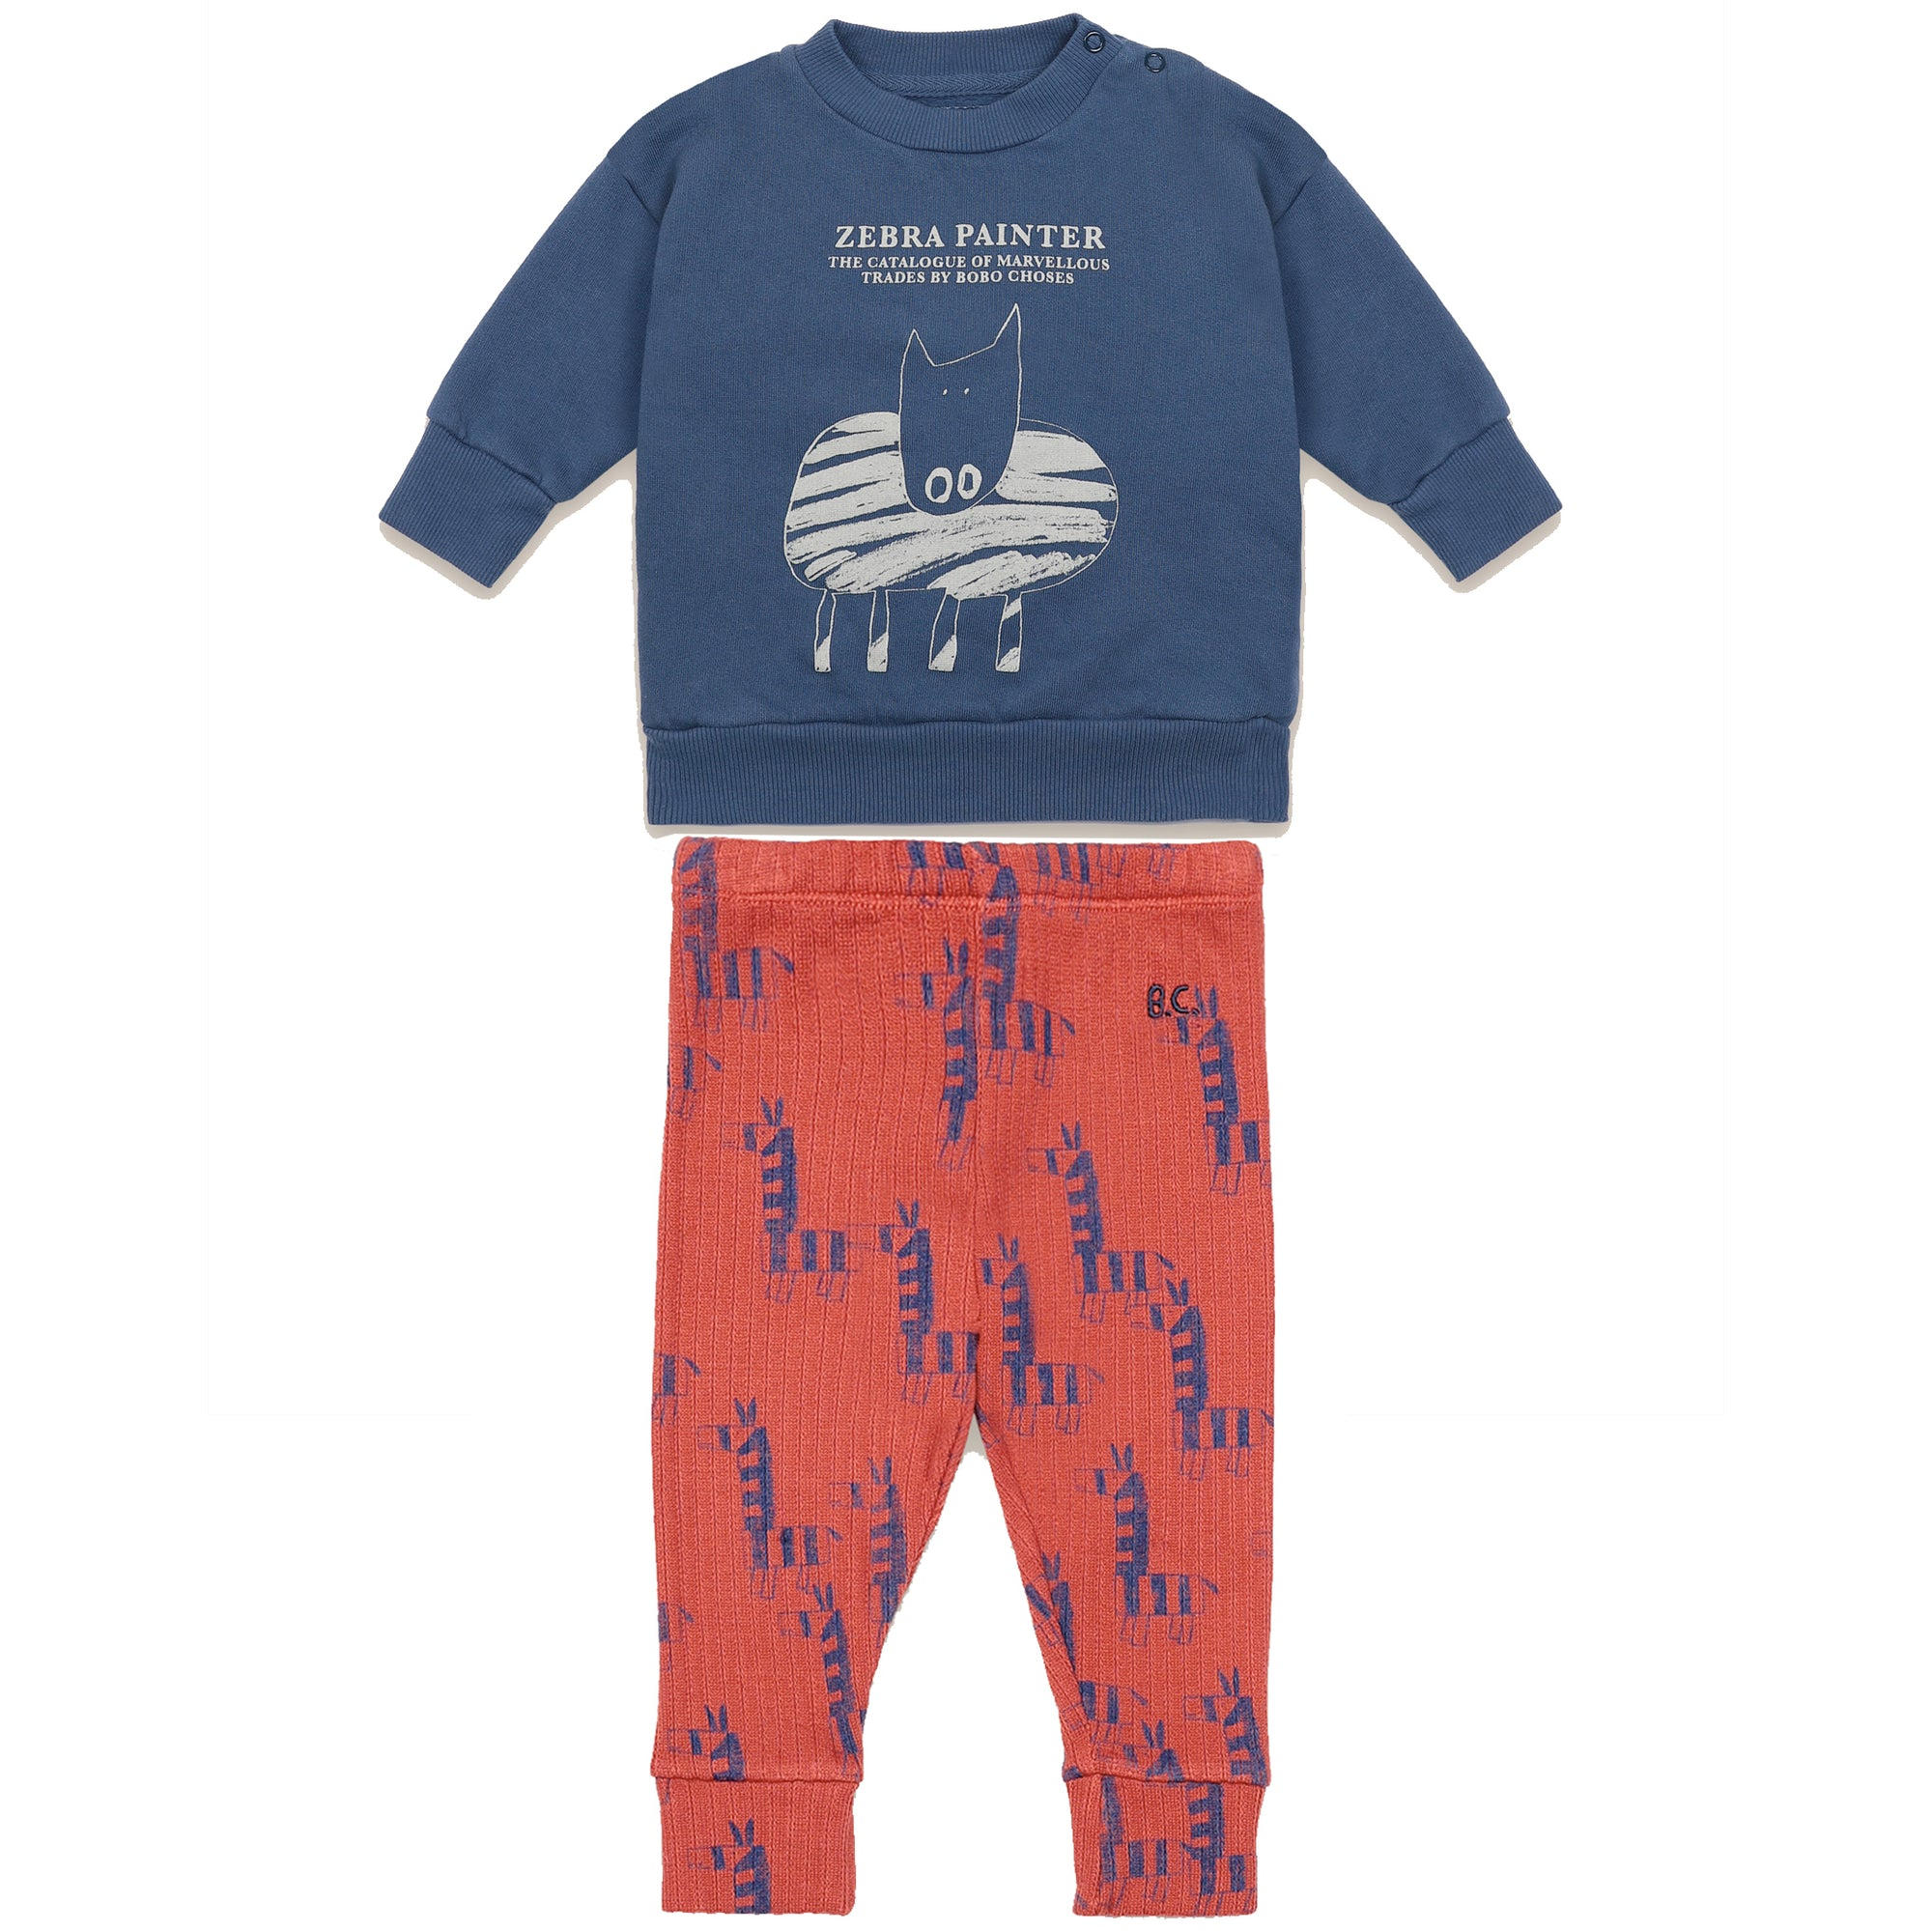 bobo choses zebra painter pajamas